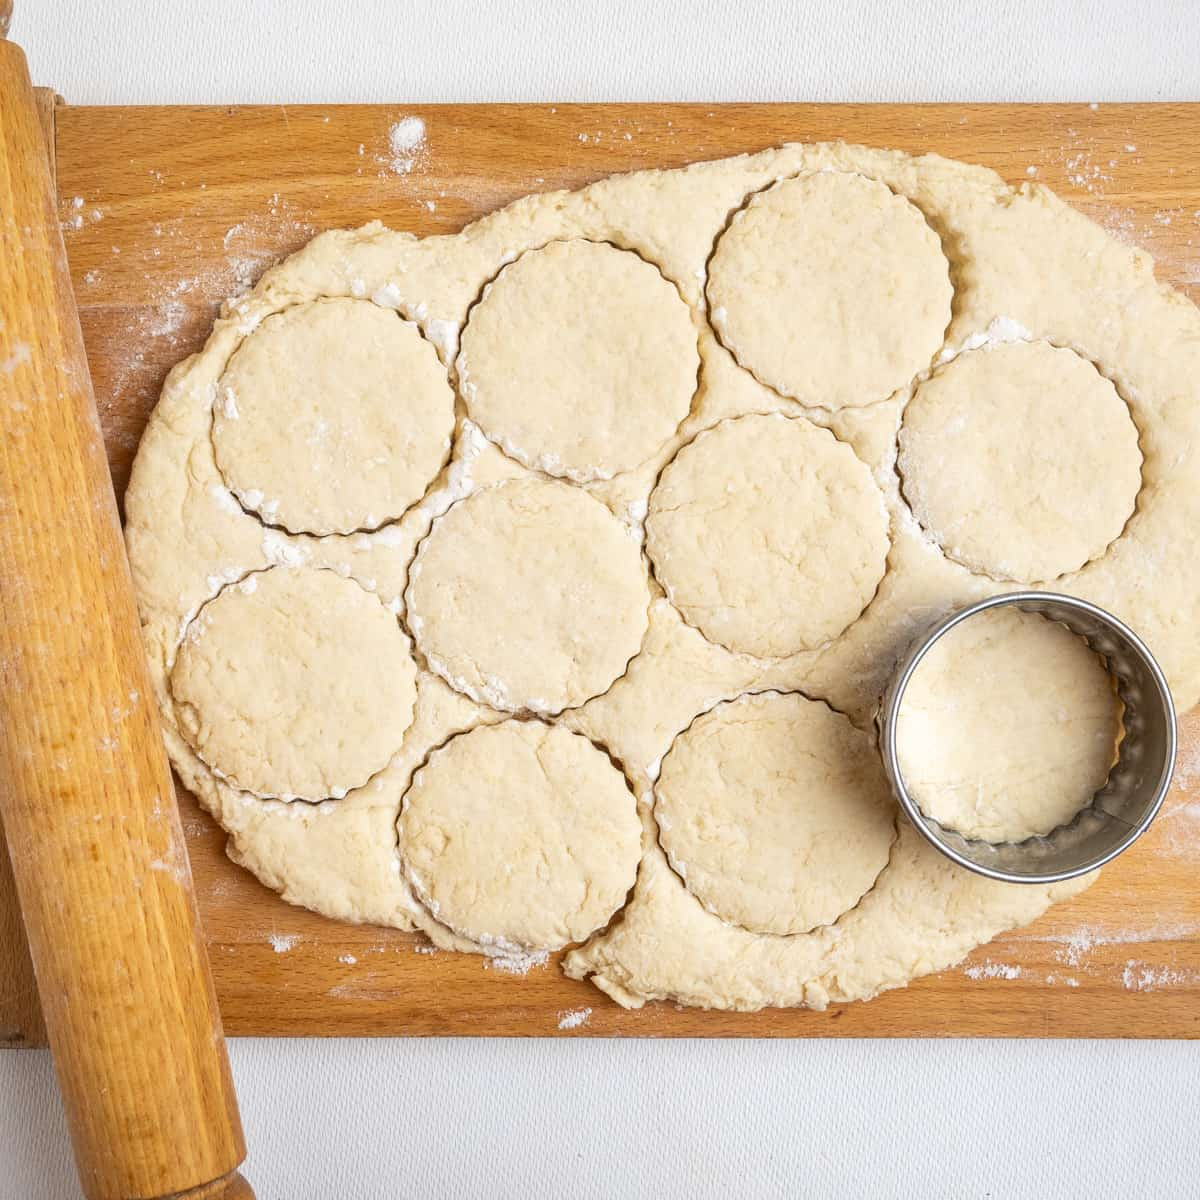 Round shapes cut from a rolled dough using a cookie cutter.